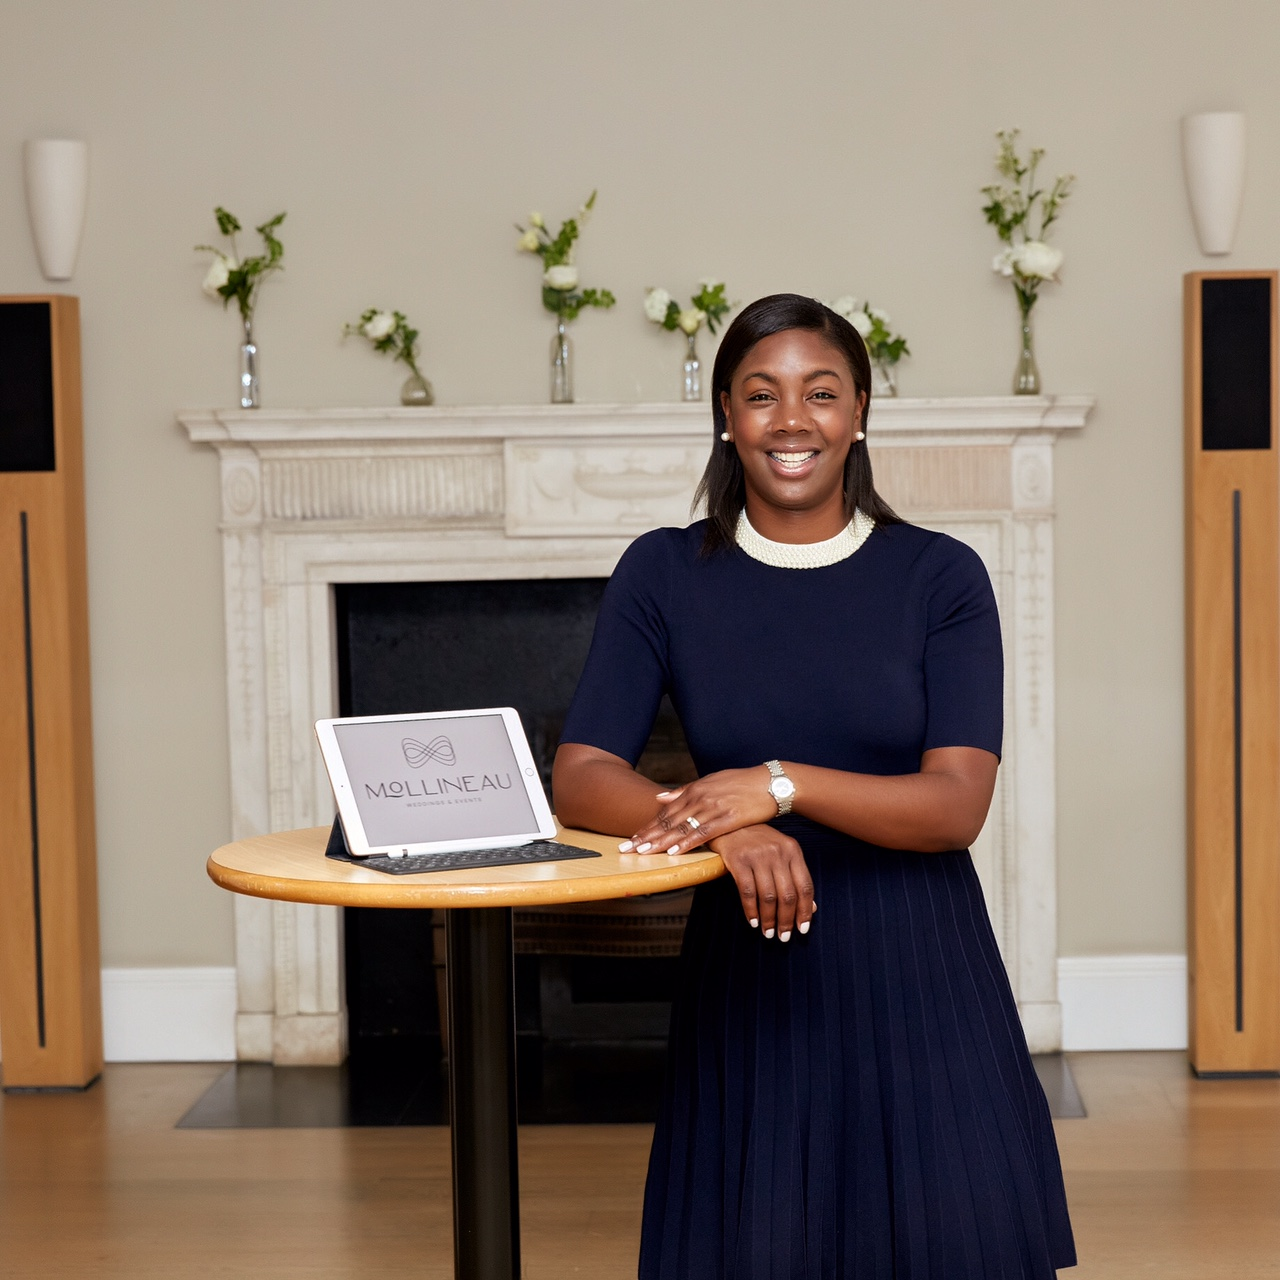 This image shows Marsha, dressed in a navy blue dress with a white collar, leaning against a table. On top of the table is an iPad which shows her business's logo on the screen. Behind her is a white, elegant fireplace that is decorated with white flowers.